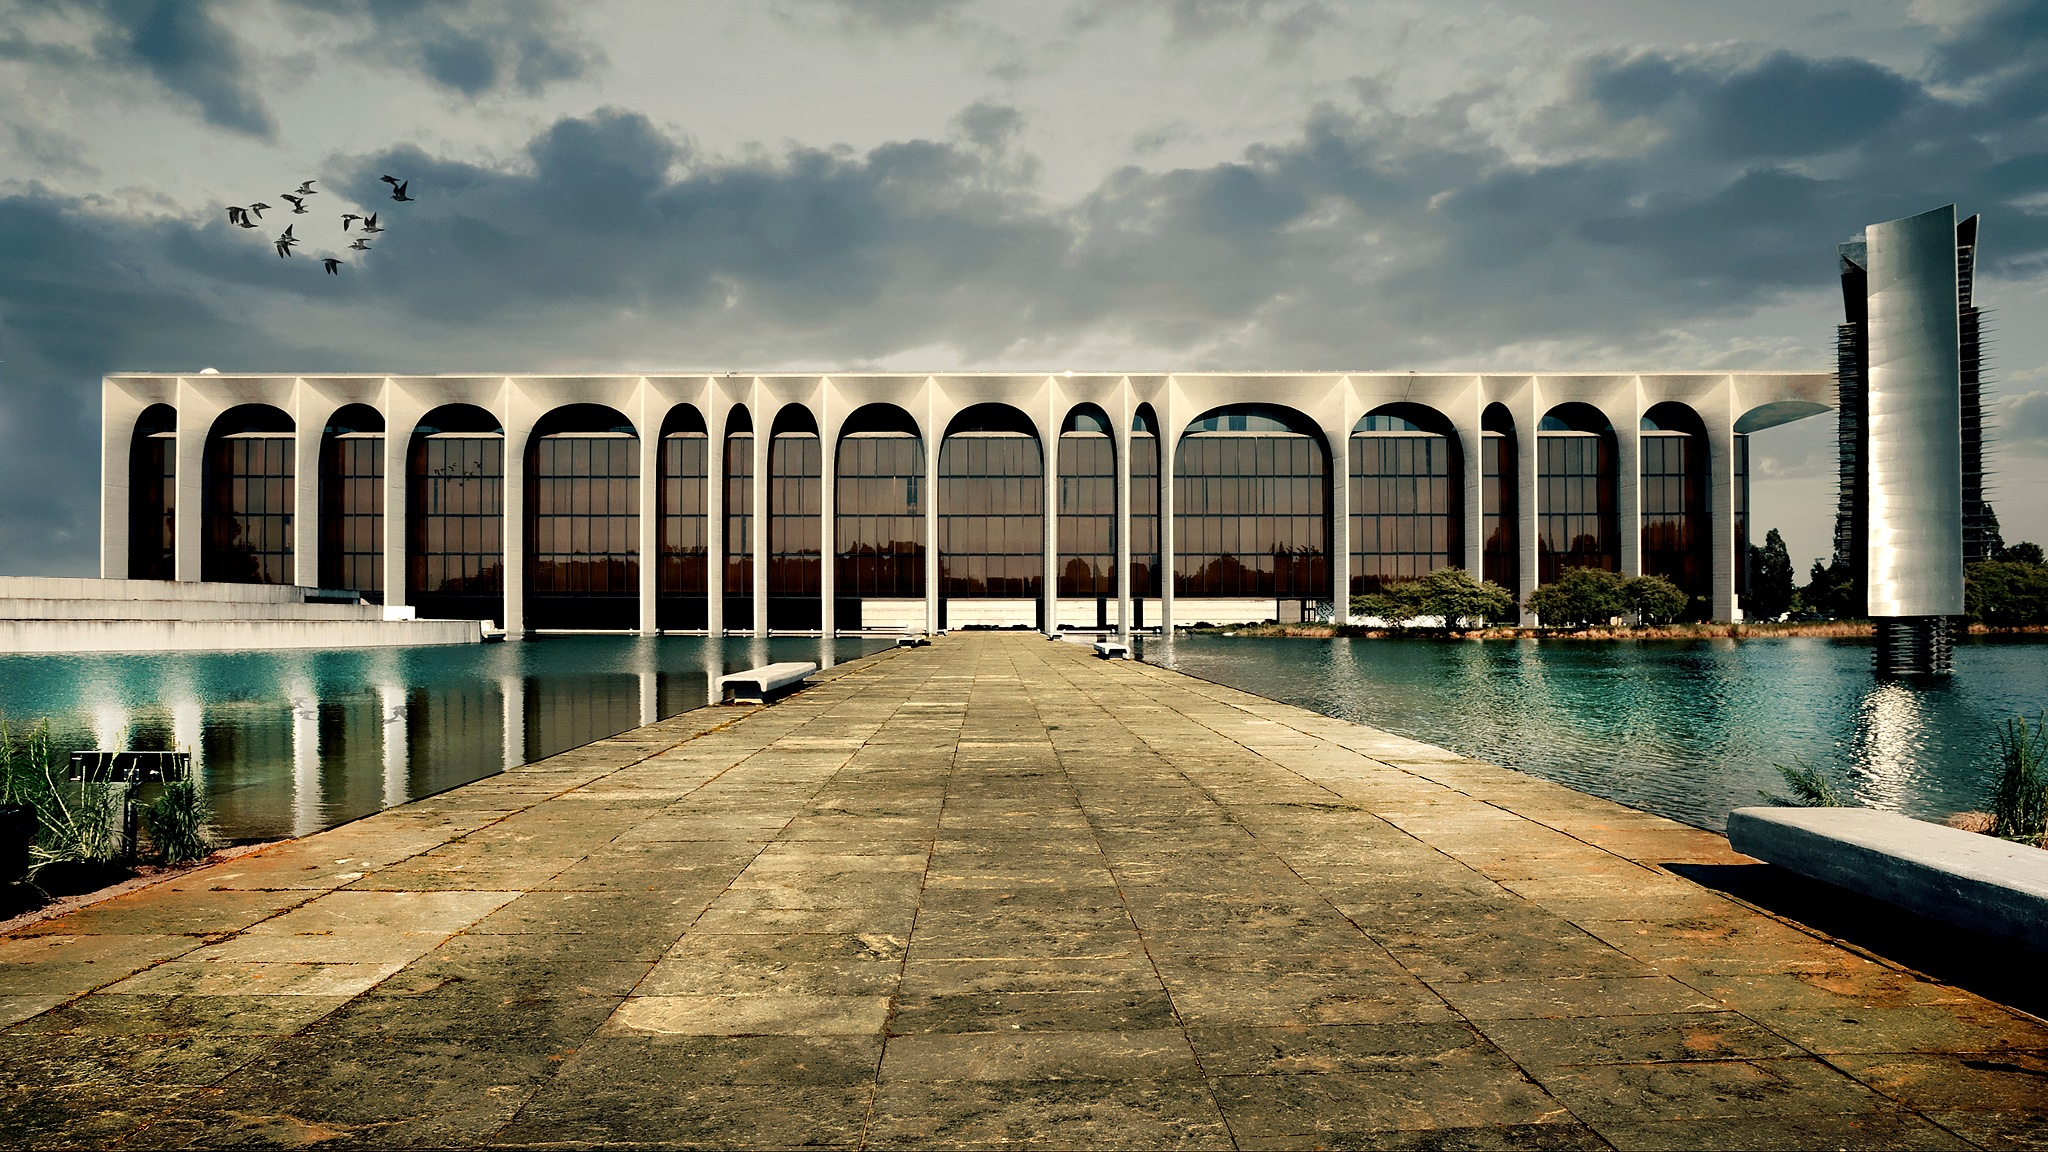 Niemeyer building, with a little imagination by Roberto Macrì